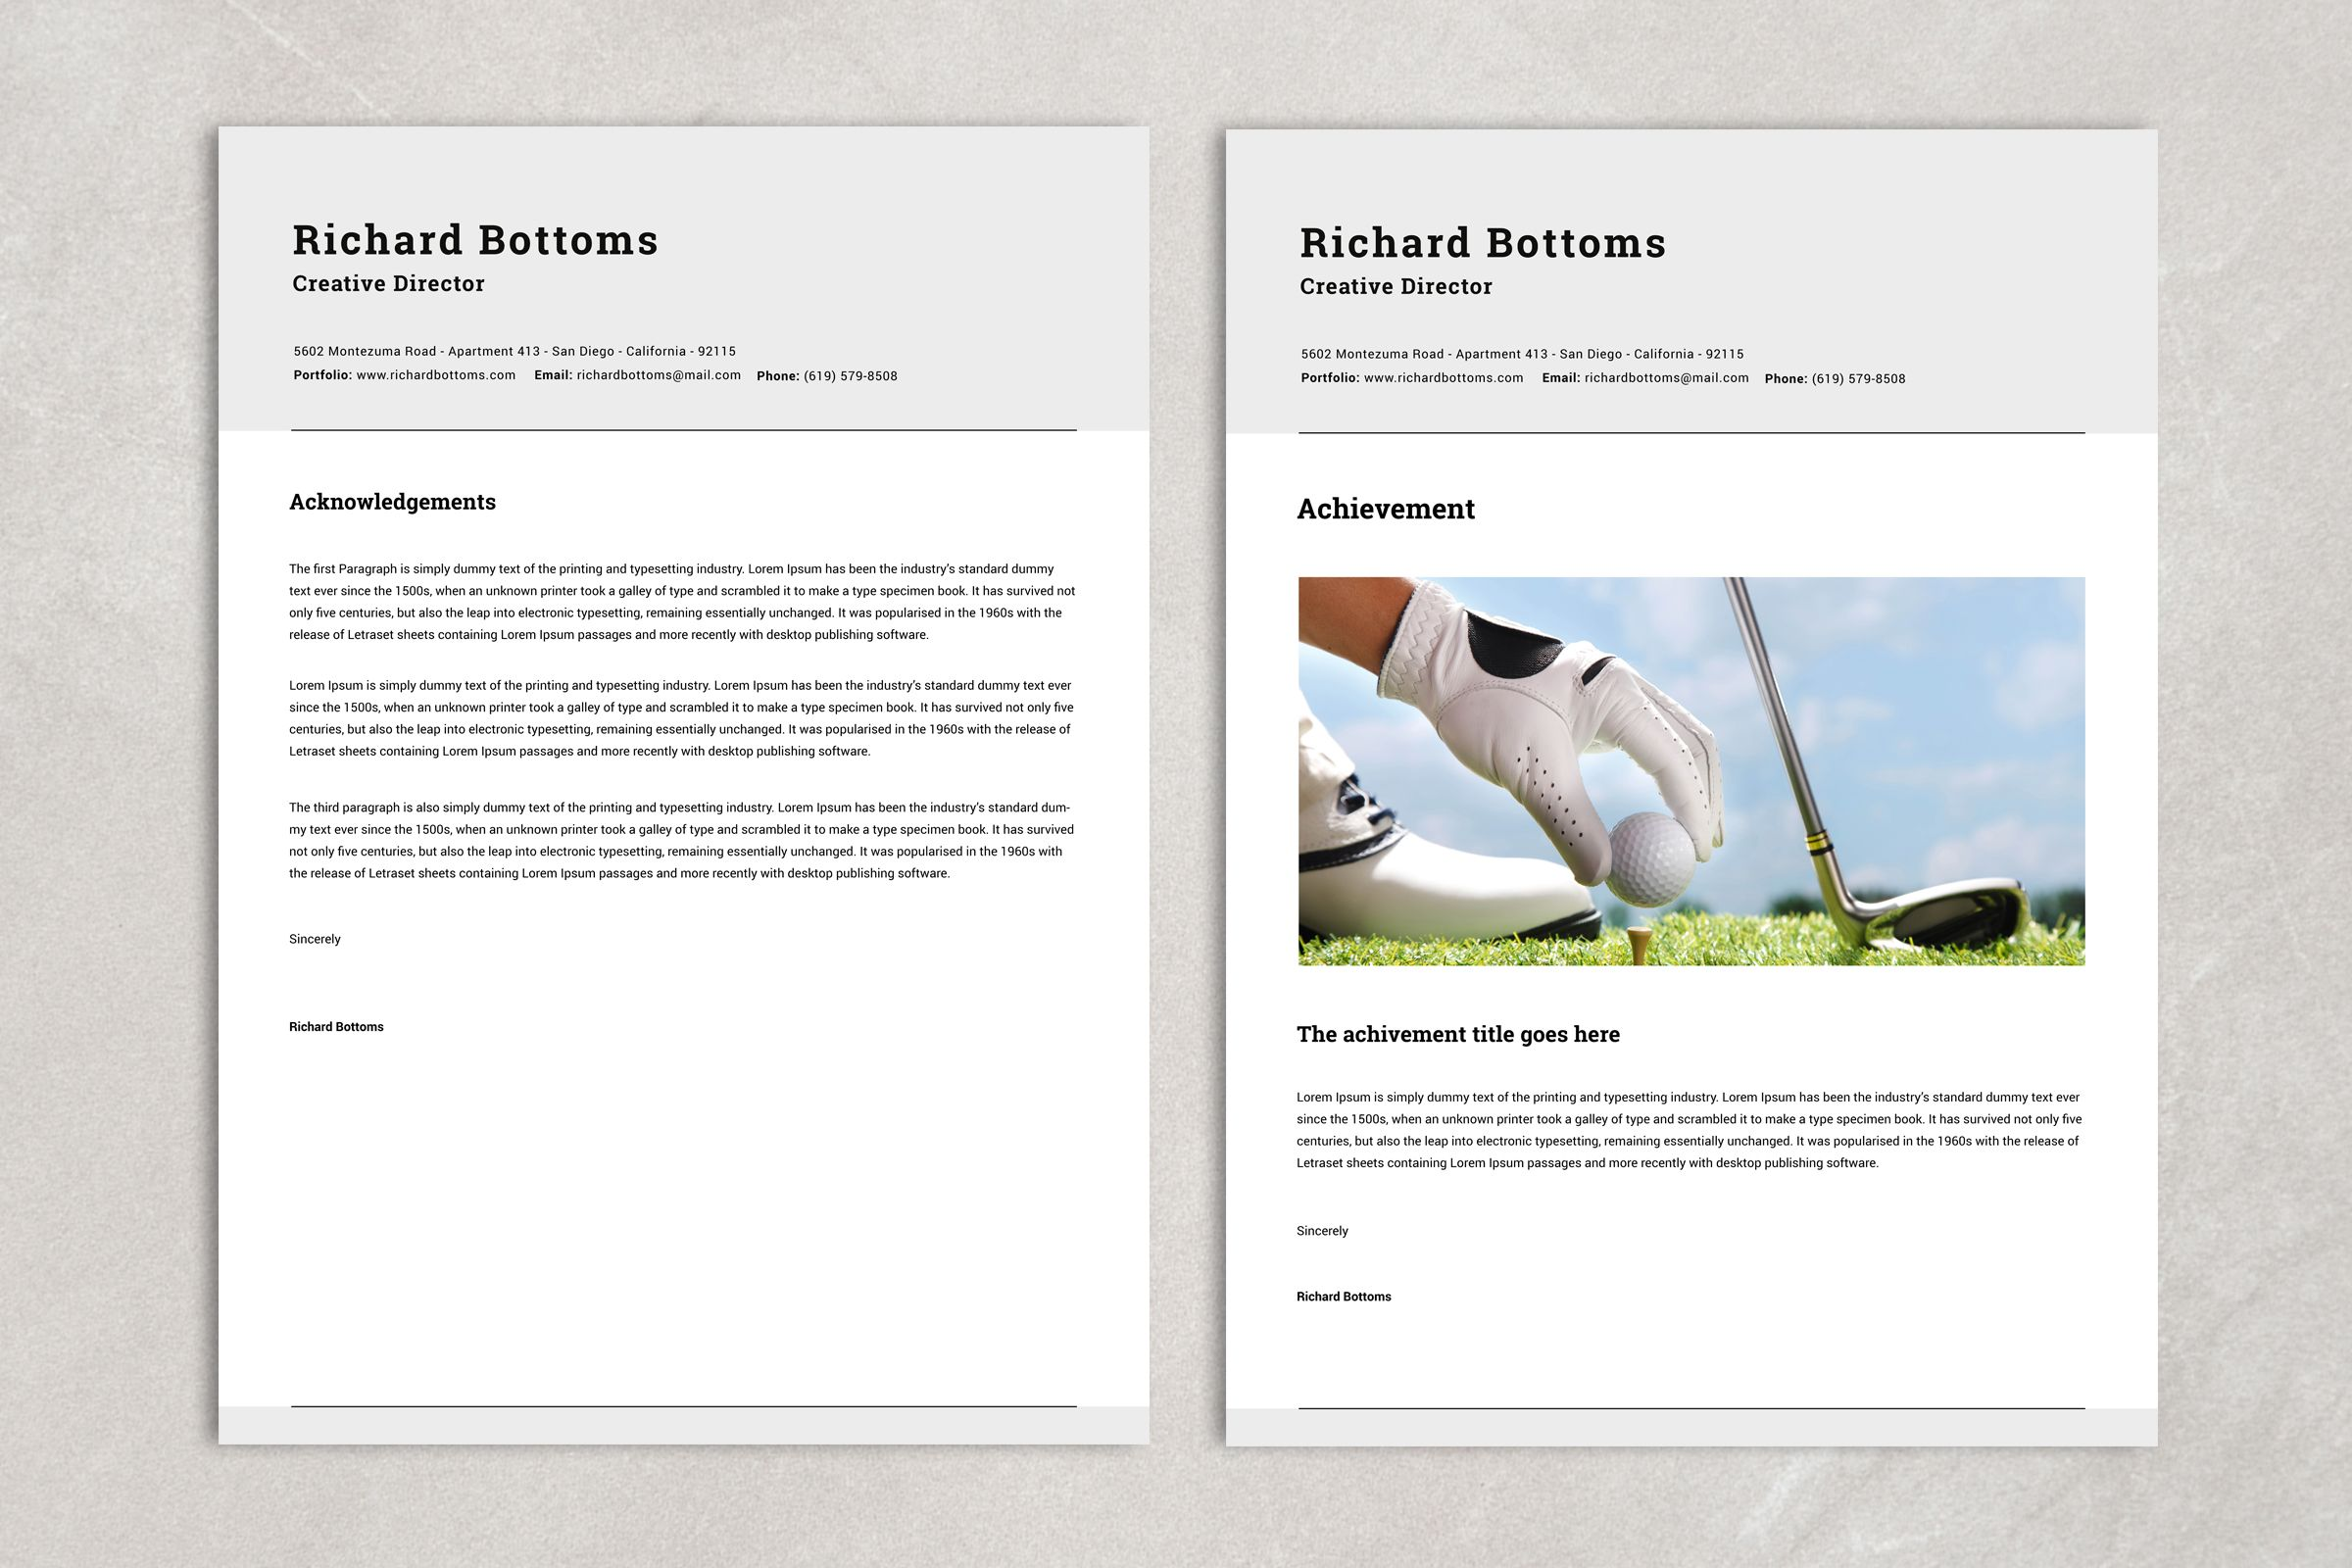 resume box for job experts vol 1 by snipescientist on